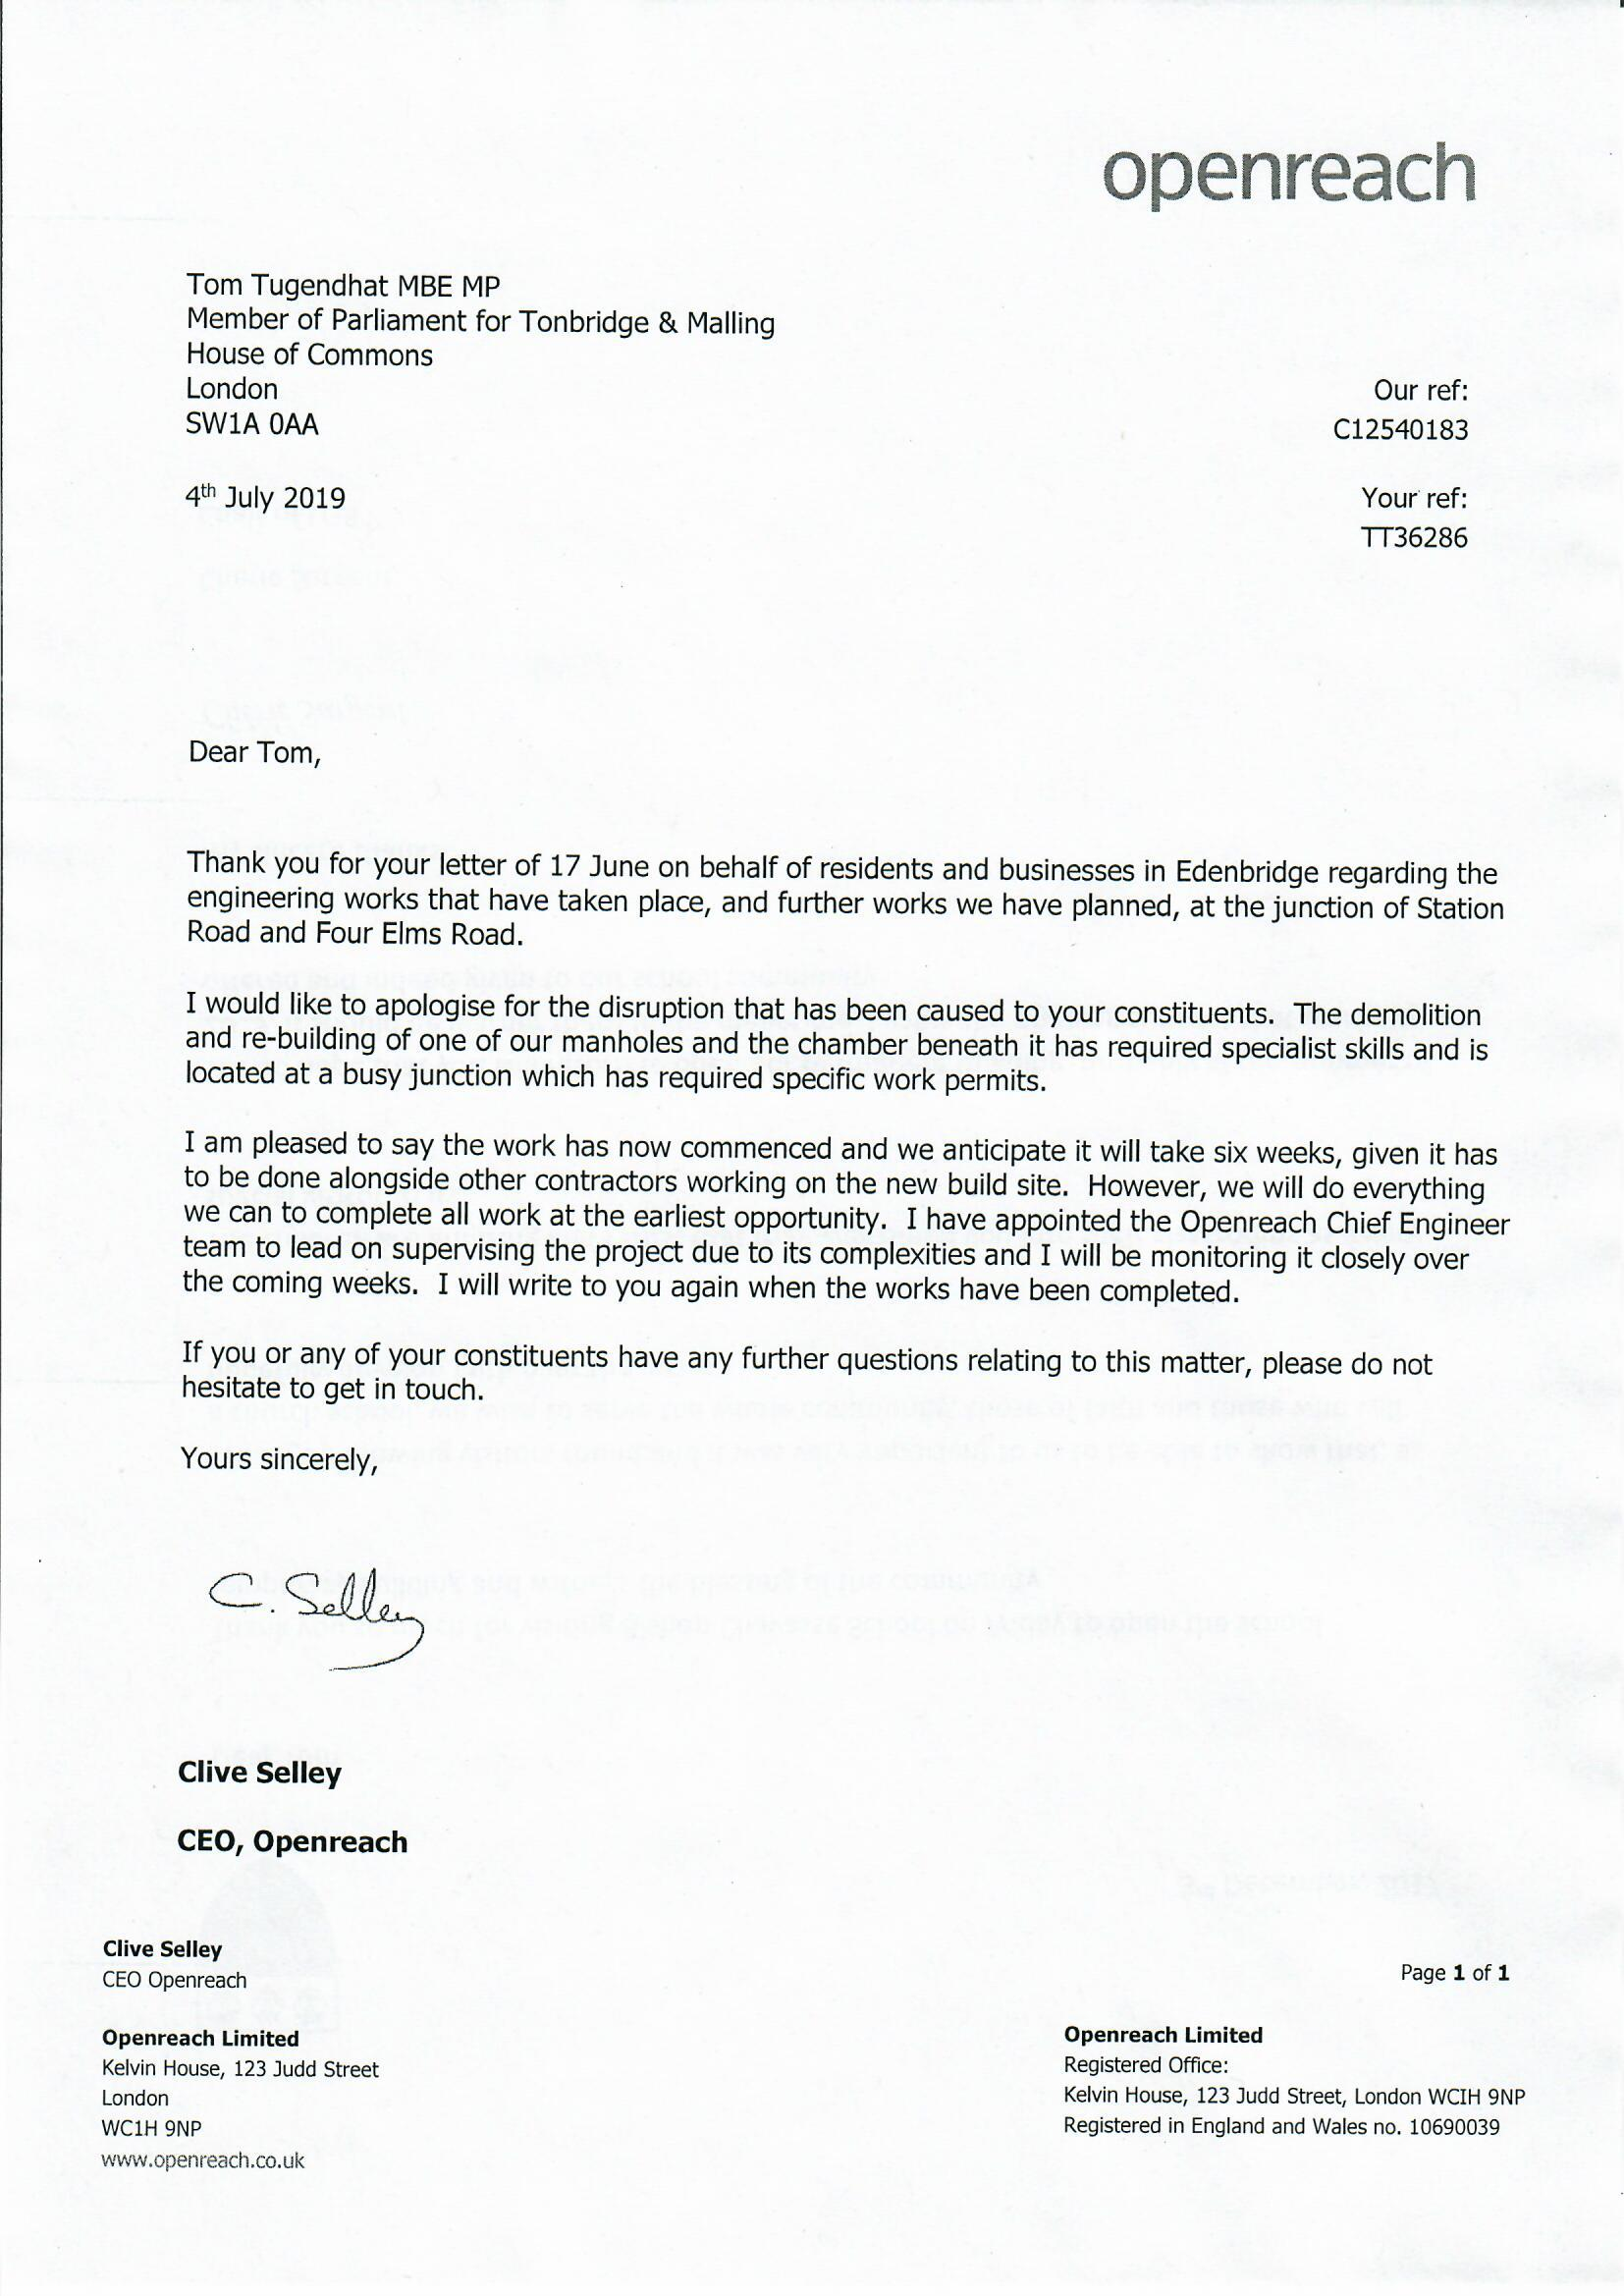 We, finally, have some much needed action by Openreach at the junction of Station Road and Four Elms Road in Edenbridge. Here's a copy of the letter I've received from their Chief Executive today.  We should only have 6 weeks of works remaining at this junction and I'm pleased that the Openreach Chief Engineer team have taken over the project. It shouldn't have taken this long but at least we have an end in sight.